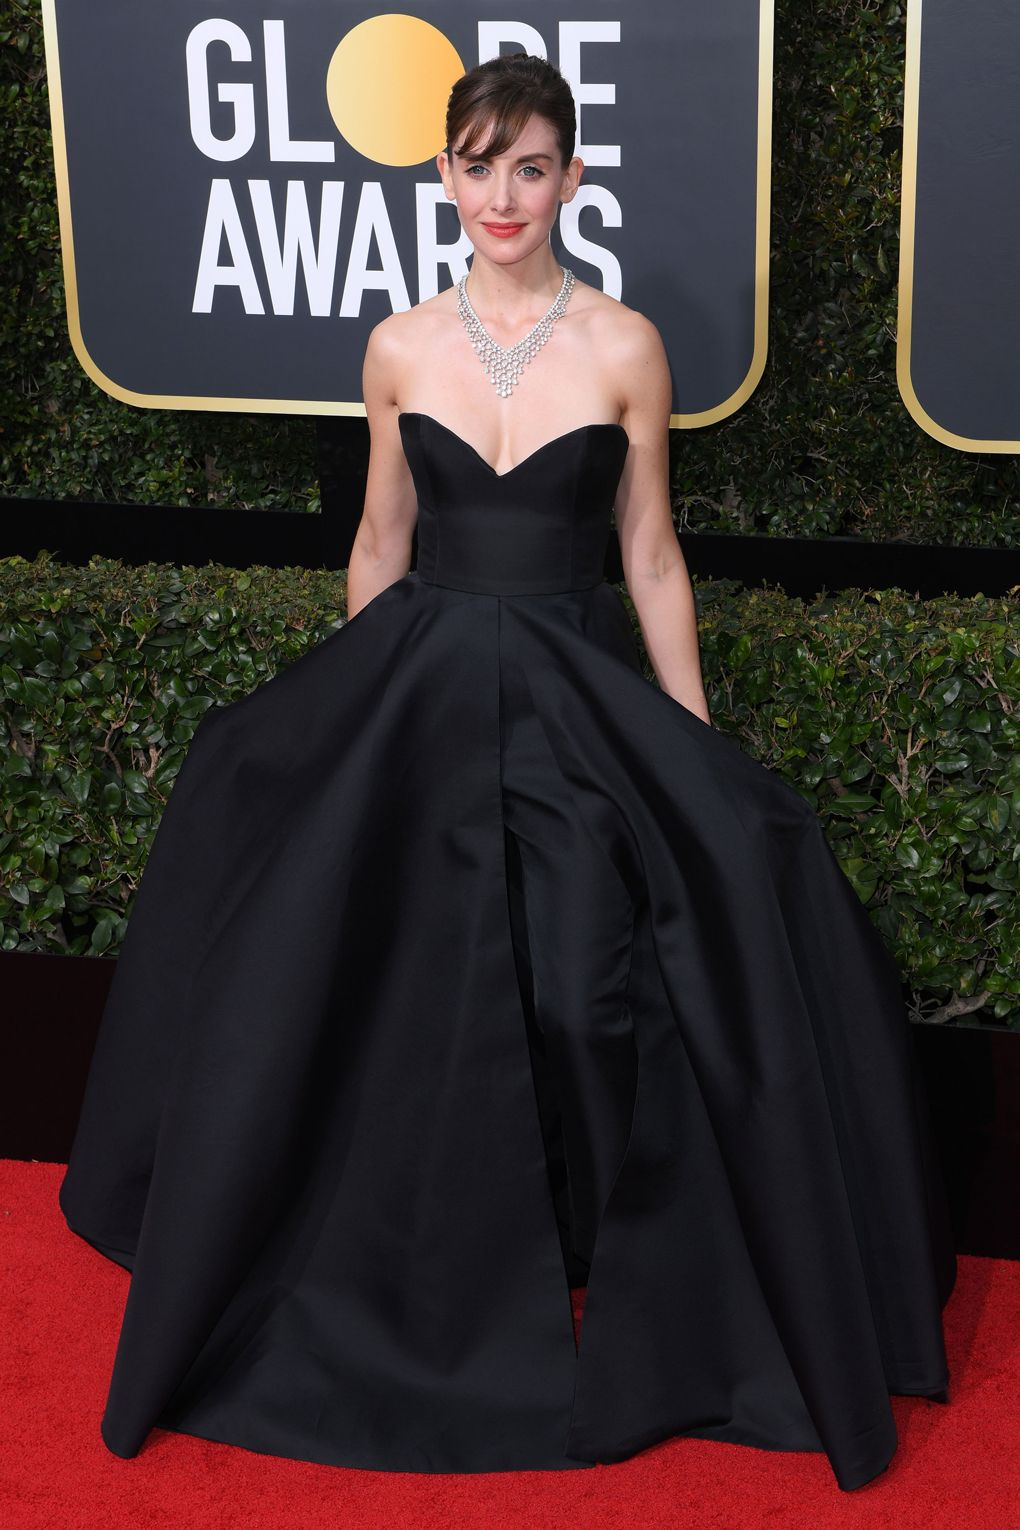 golden globes 2019 - photo #7